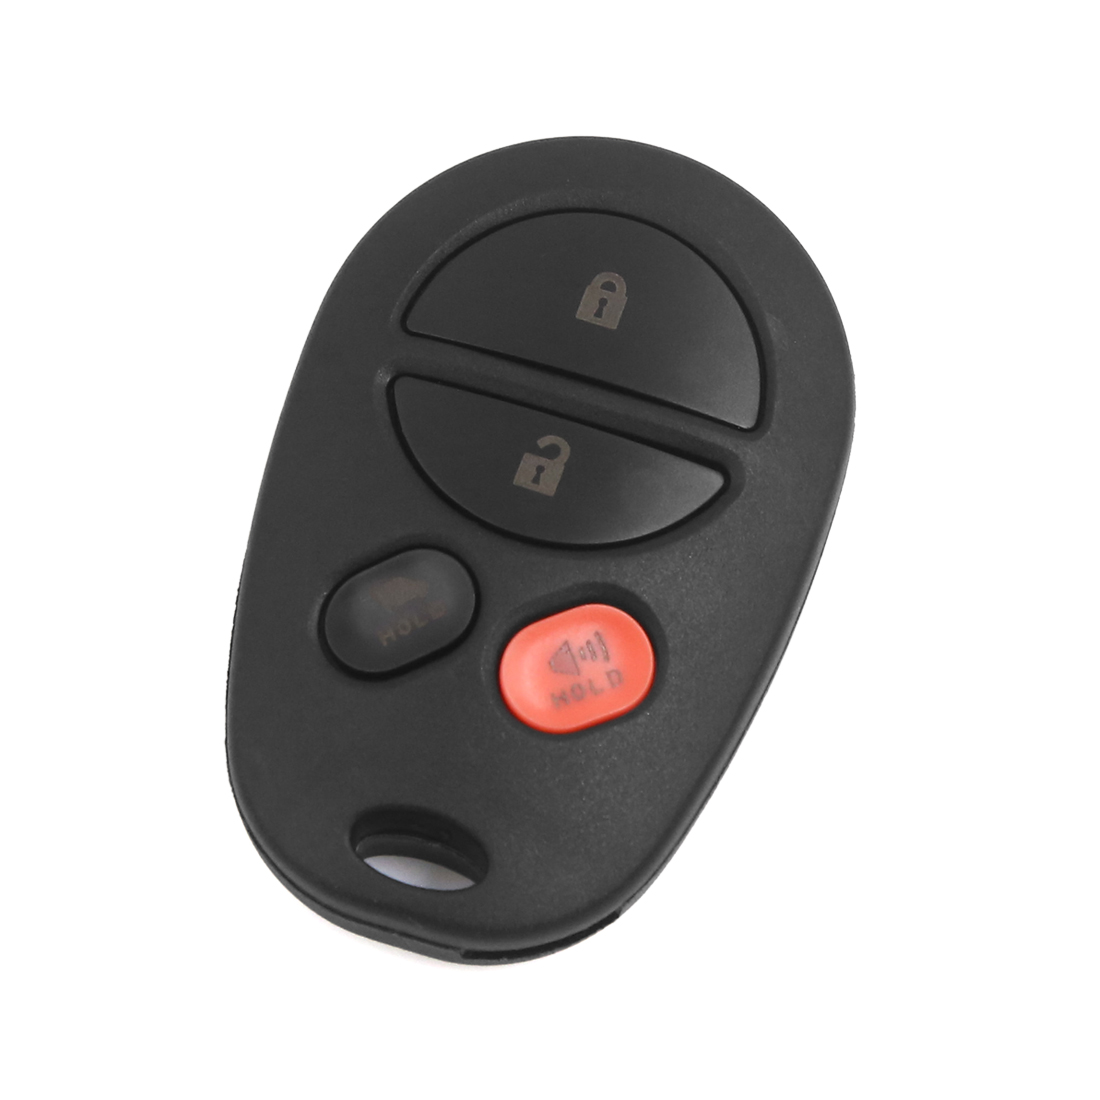 New Replacement 4 BTN Keyless Entry Remote Key Clicker Transmitter for GQ43VT20T